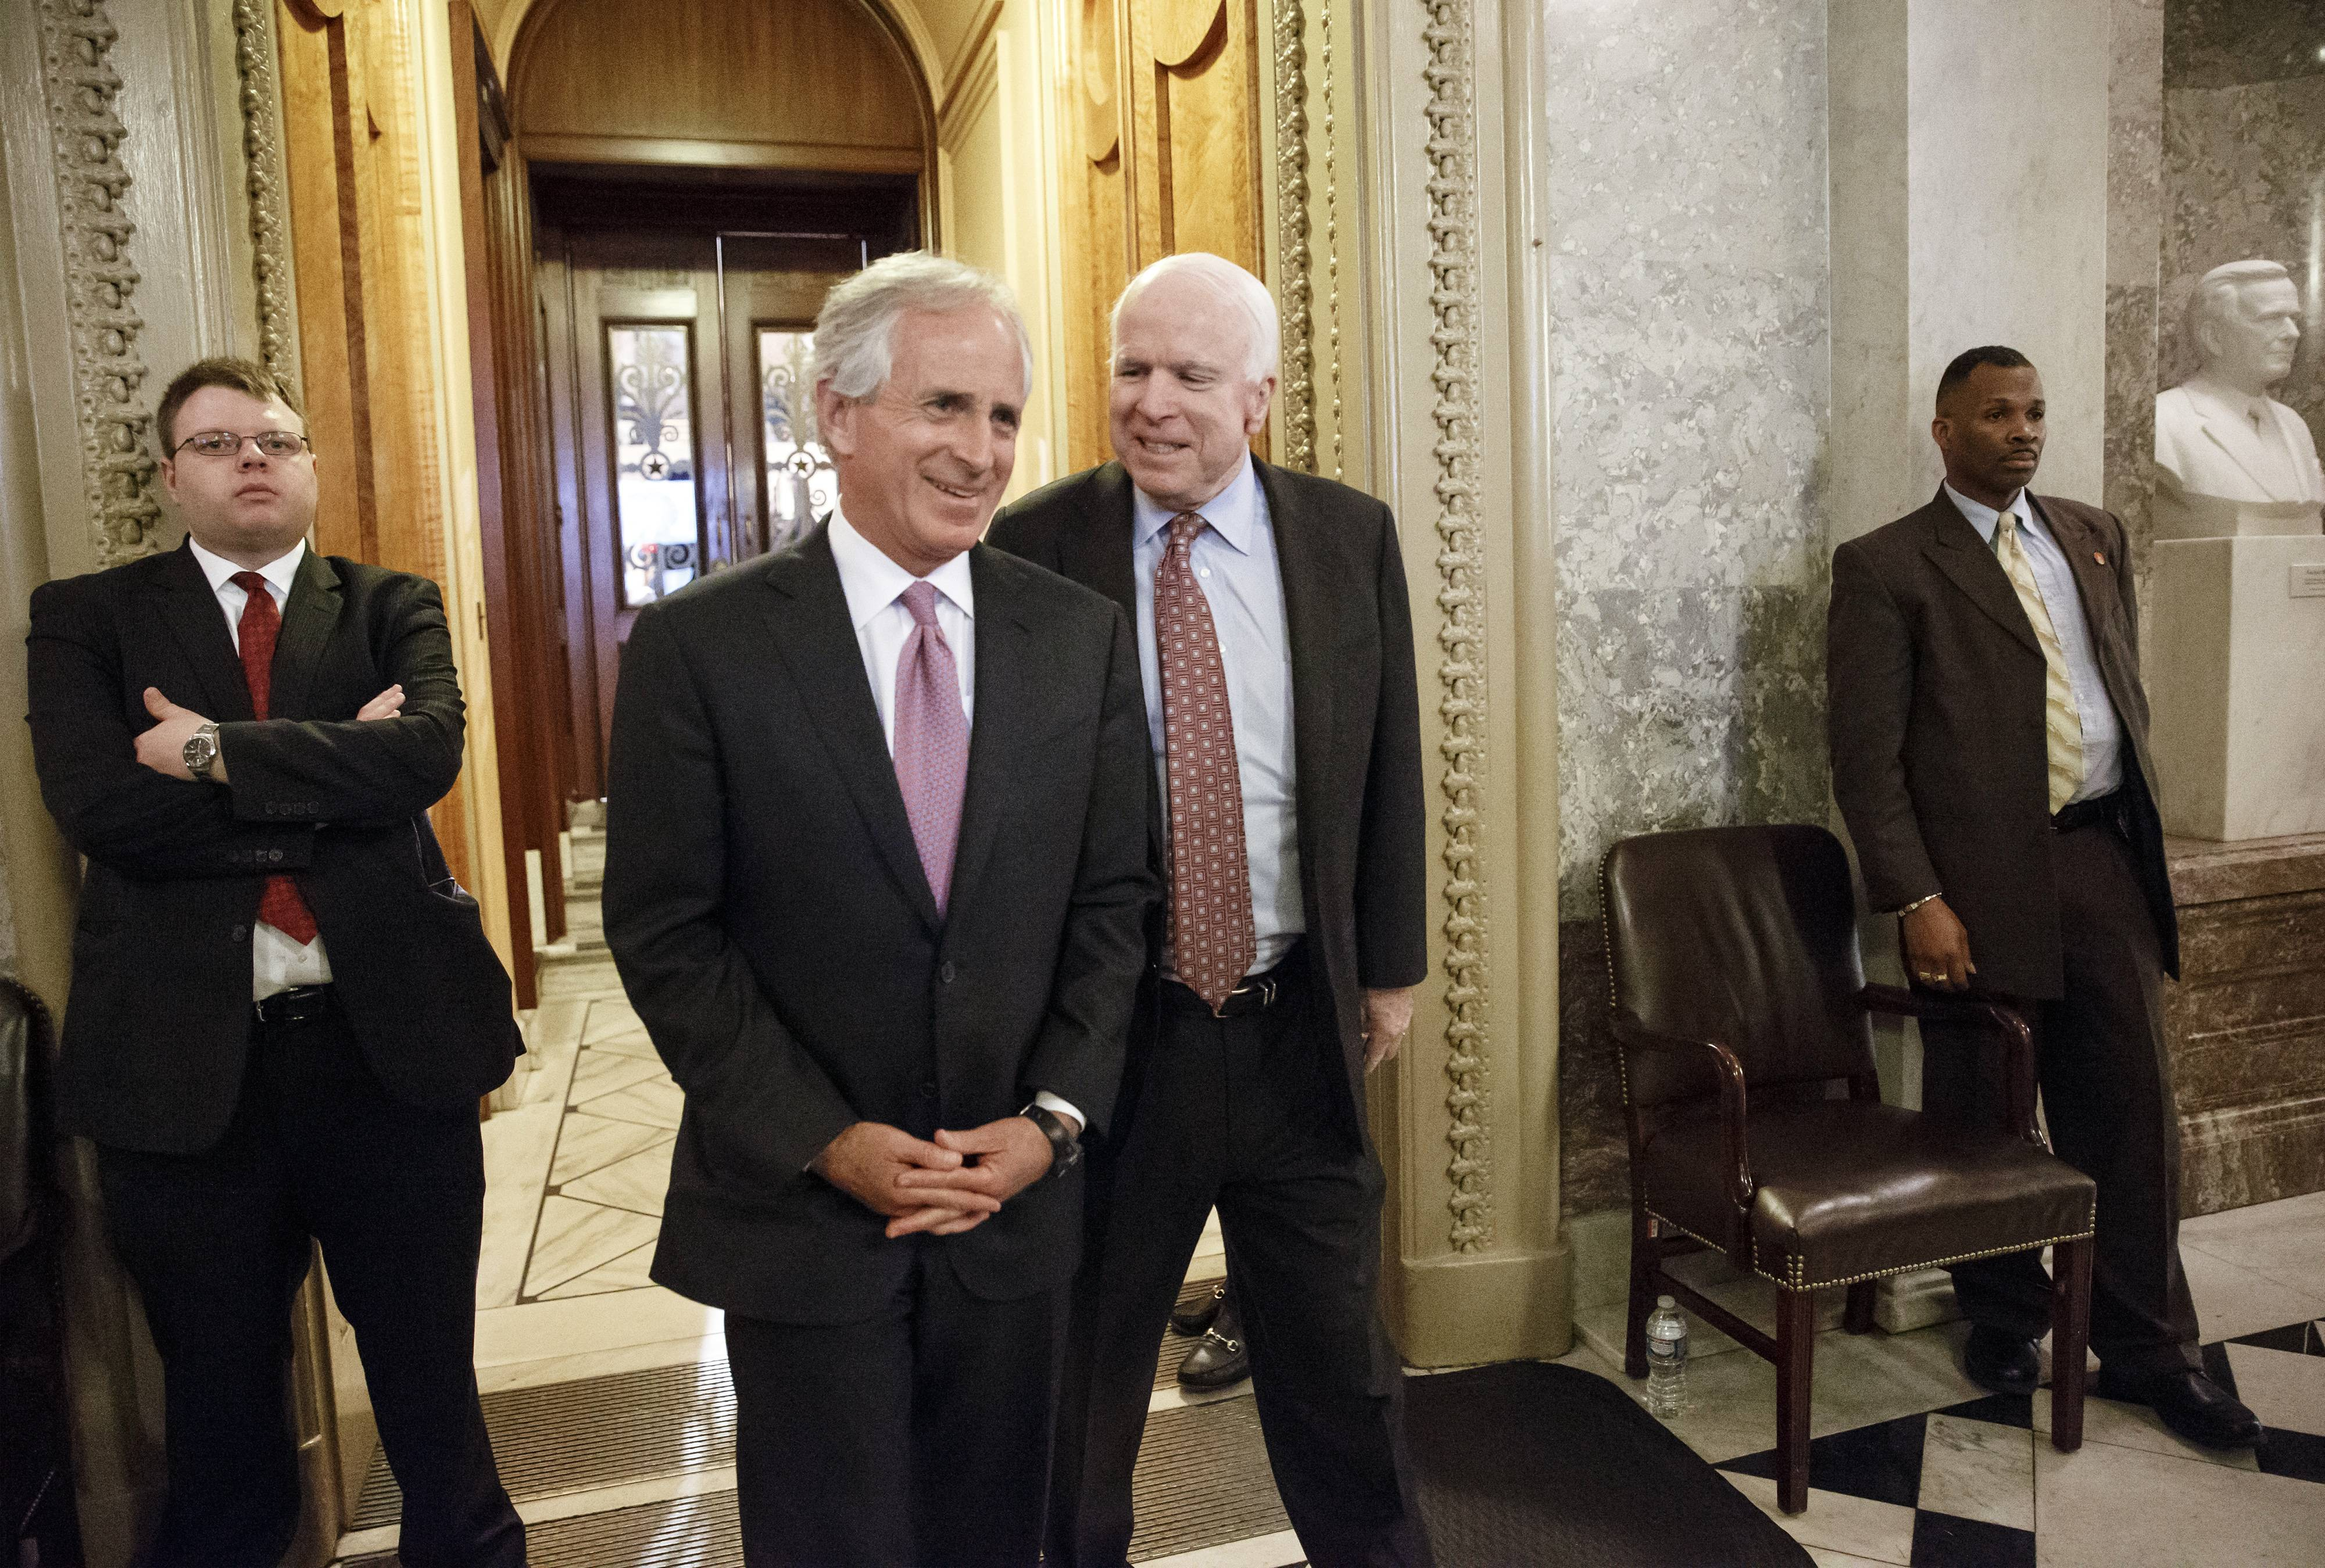 Sen. Bob Corker, R-Tenn., left, and Sen. John McCain, R-Ariz., join other lawmakers during the vote on restoring jobless benefits for the long-term unemployed, legislation that expired late last year, at the Capitol in Washington, Monday.